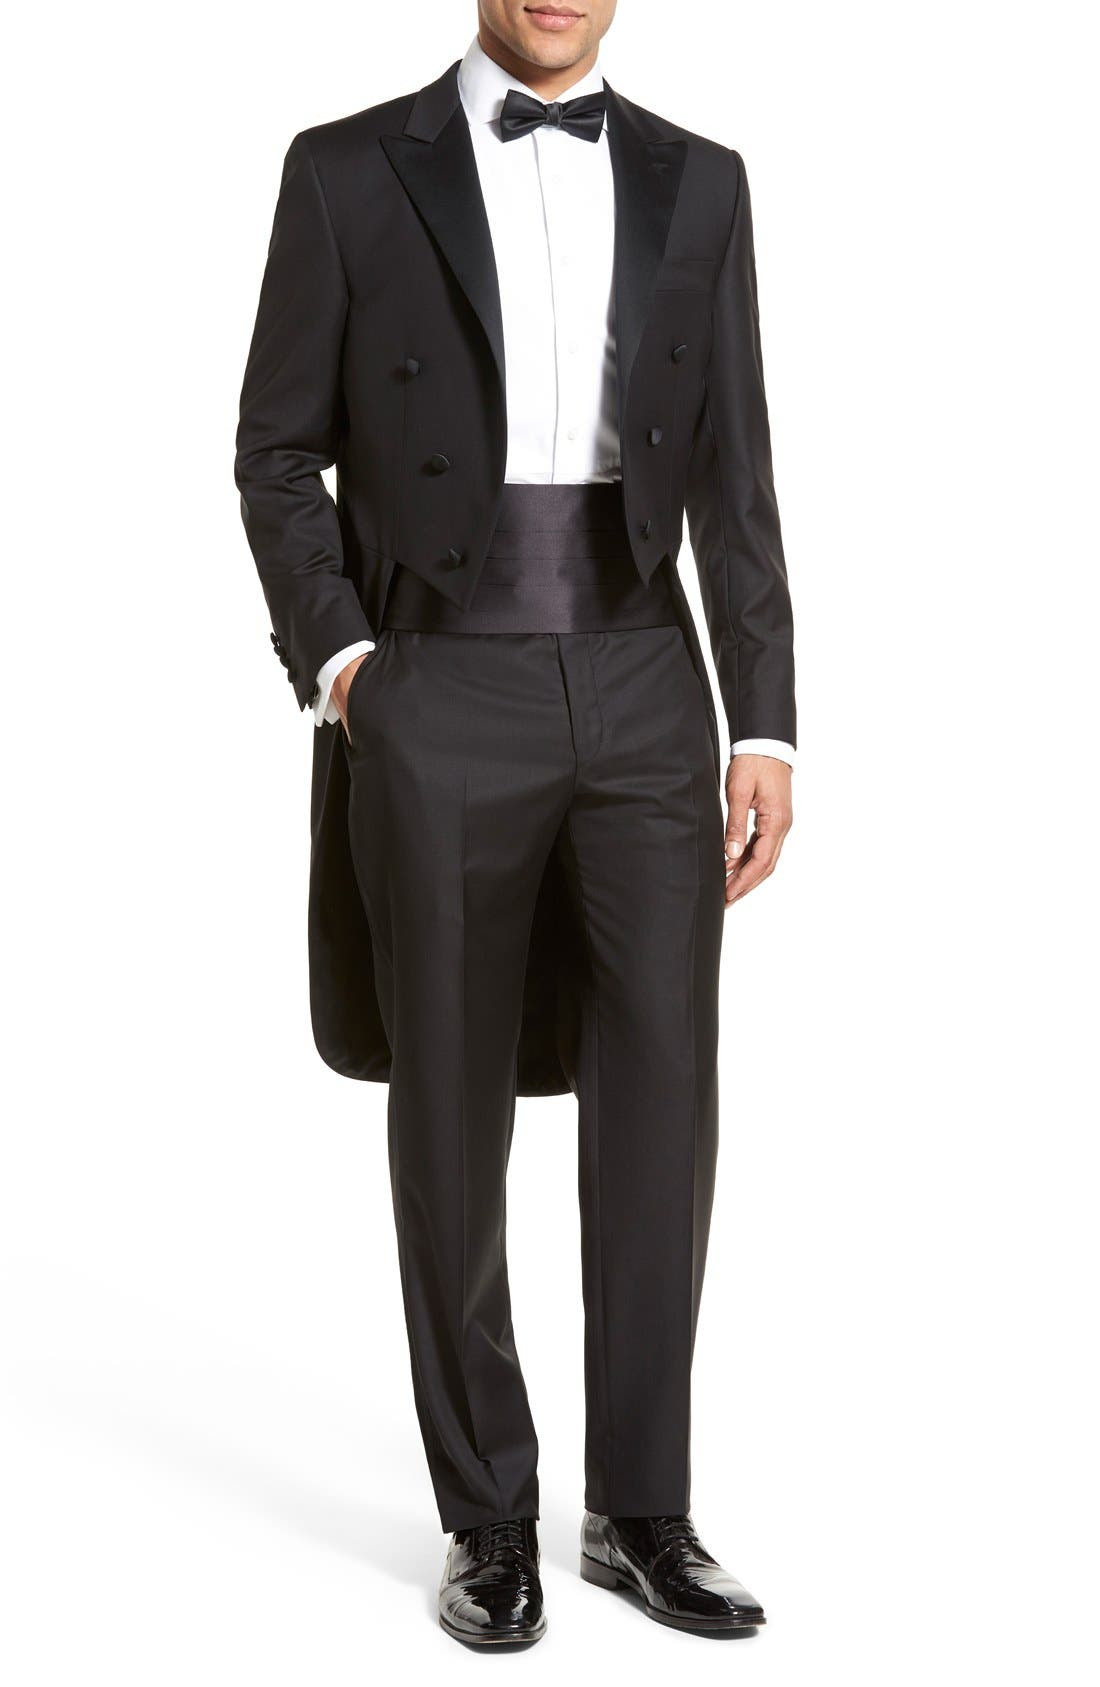 Alternate Image 1 Selected - Hickey Freeman Classic Fit Tasmanian Wool Tailcoat Tuxedo